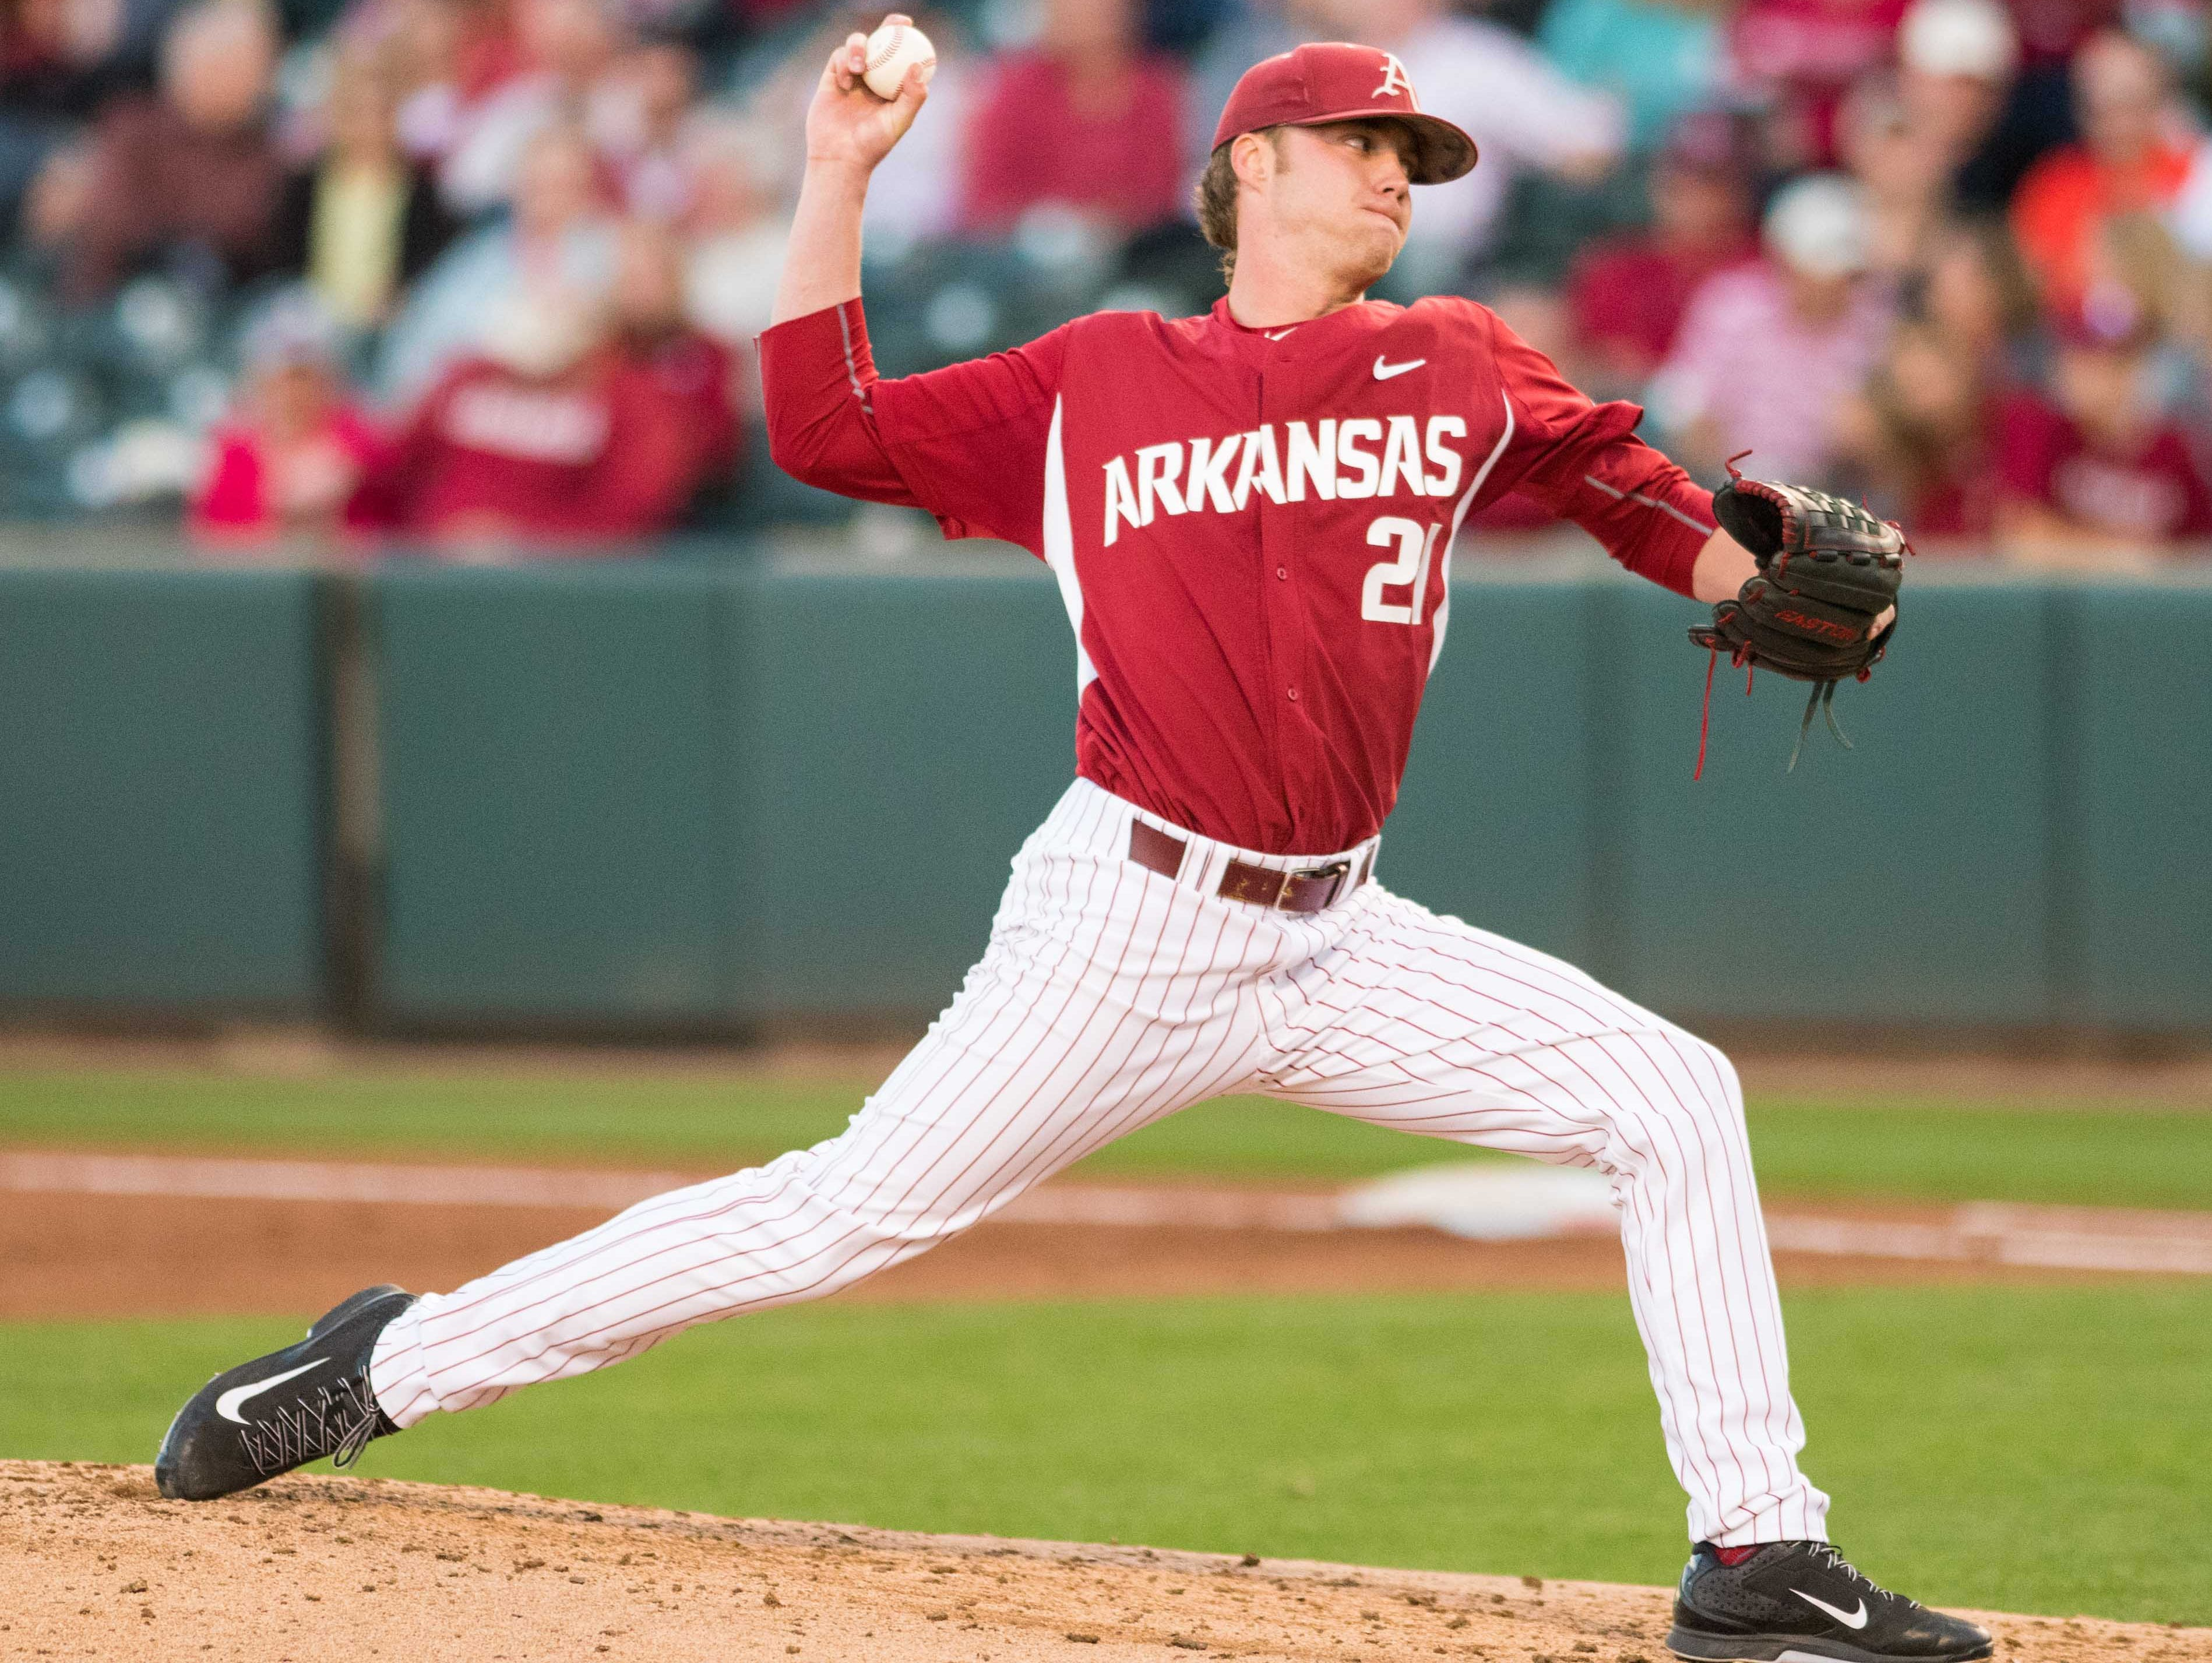 Arkansas starting pitcher Trey Killian delivers a pitch during a recent game at Baum Stadium in Fayetteville.